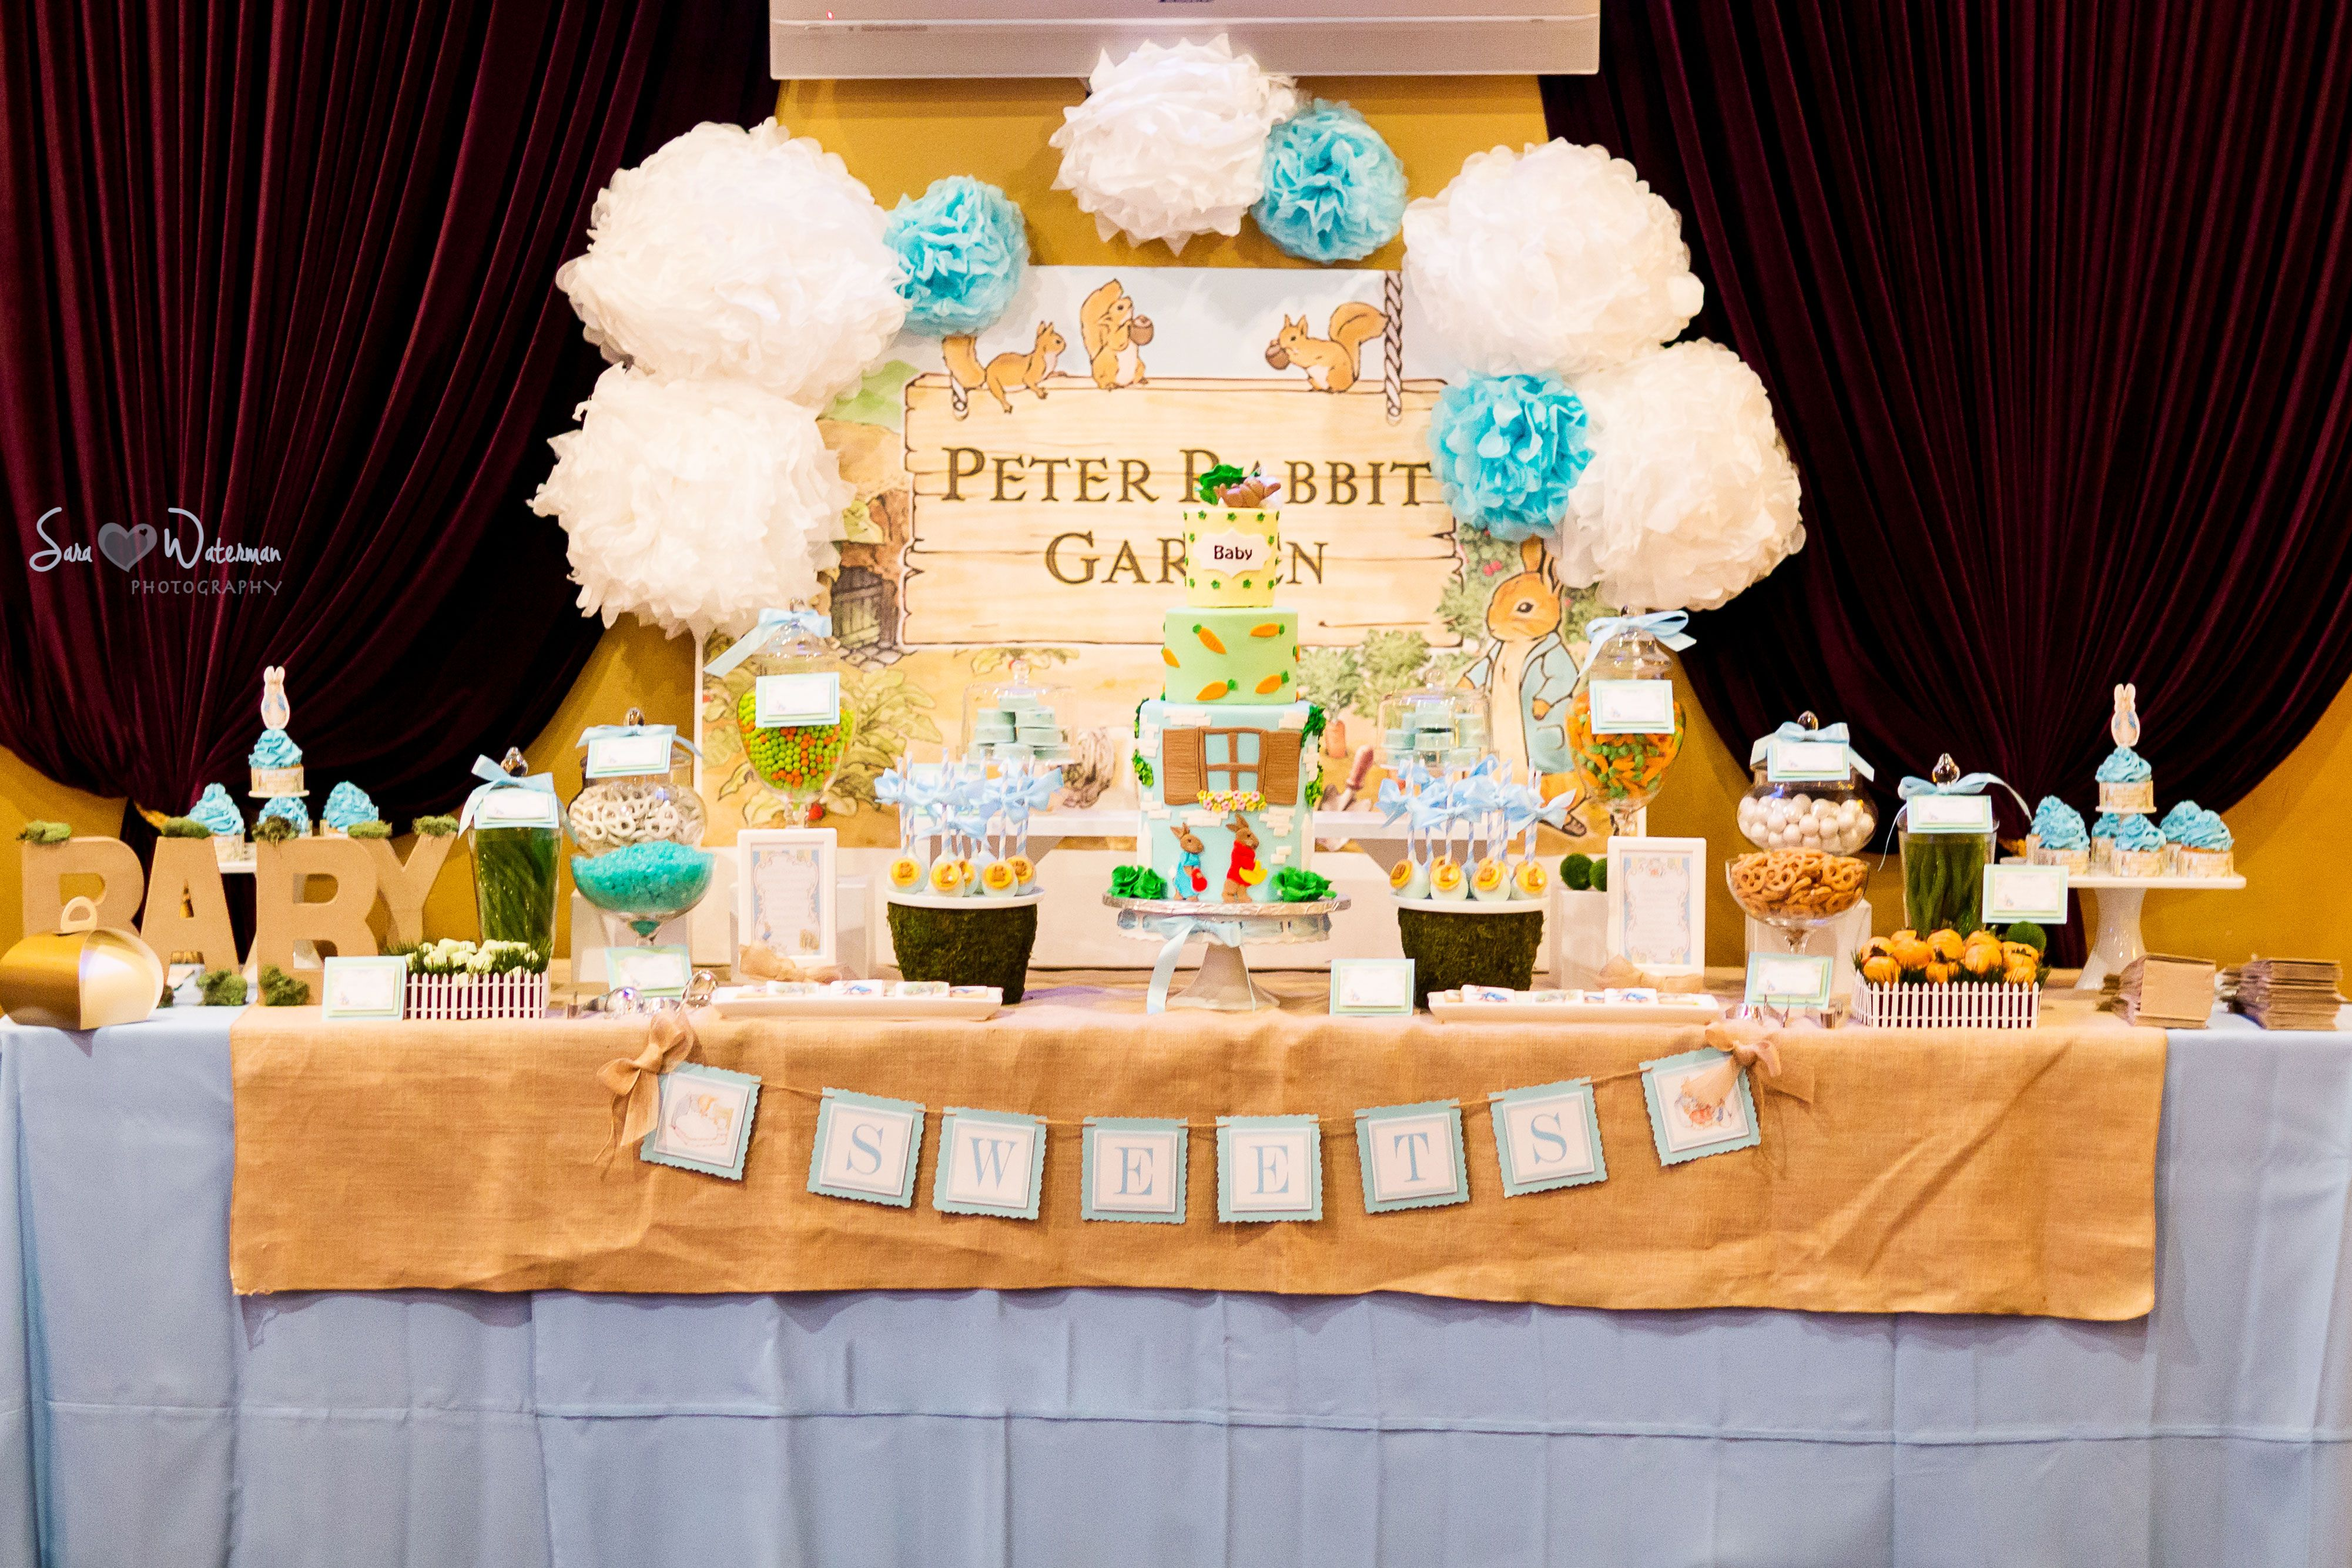 Peter Rabbit Baby Shower Dessert Table with themed sweets ...